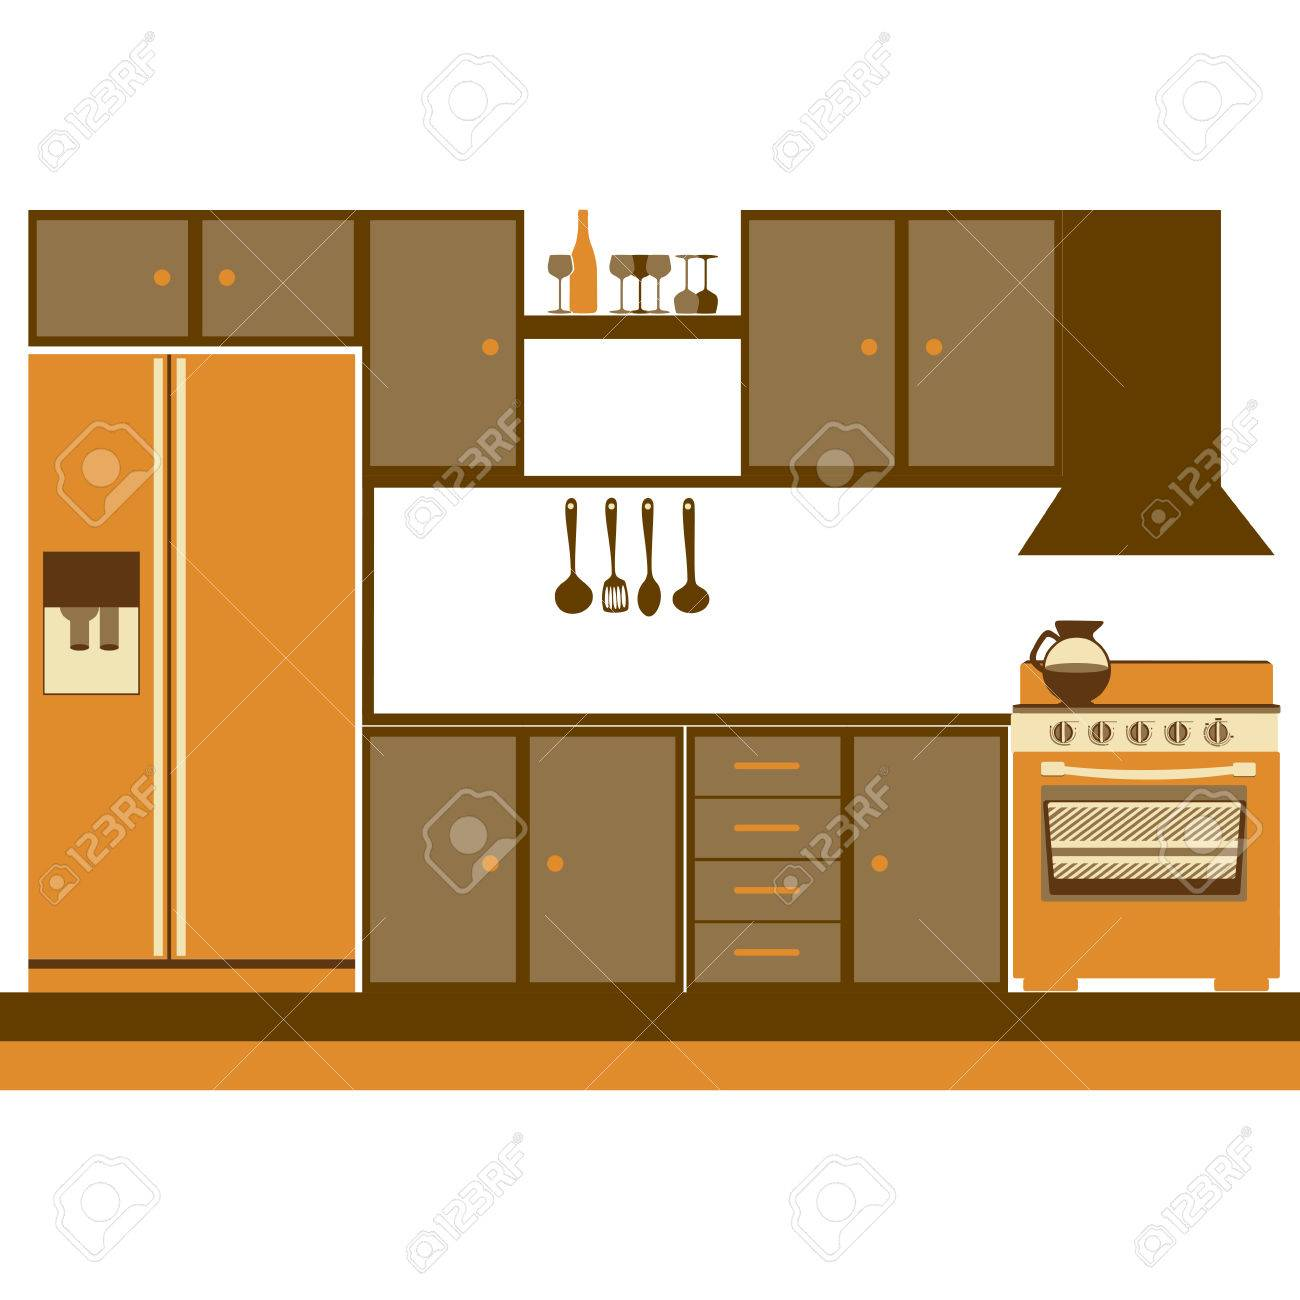 Color Silhouette Of Kitchen Cabinets With Stove And Fridge Vector